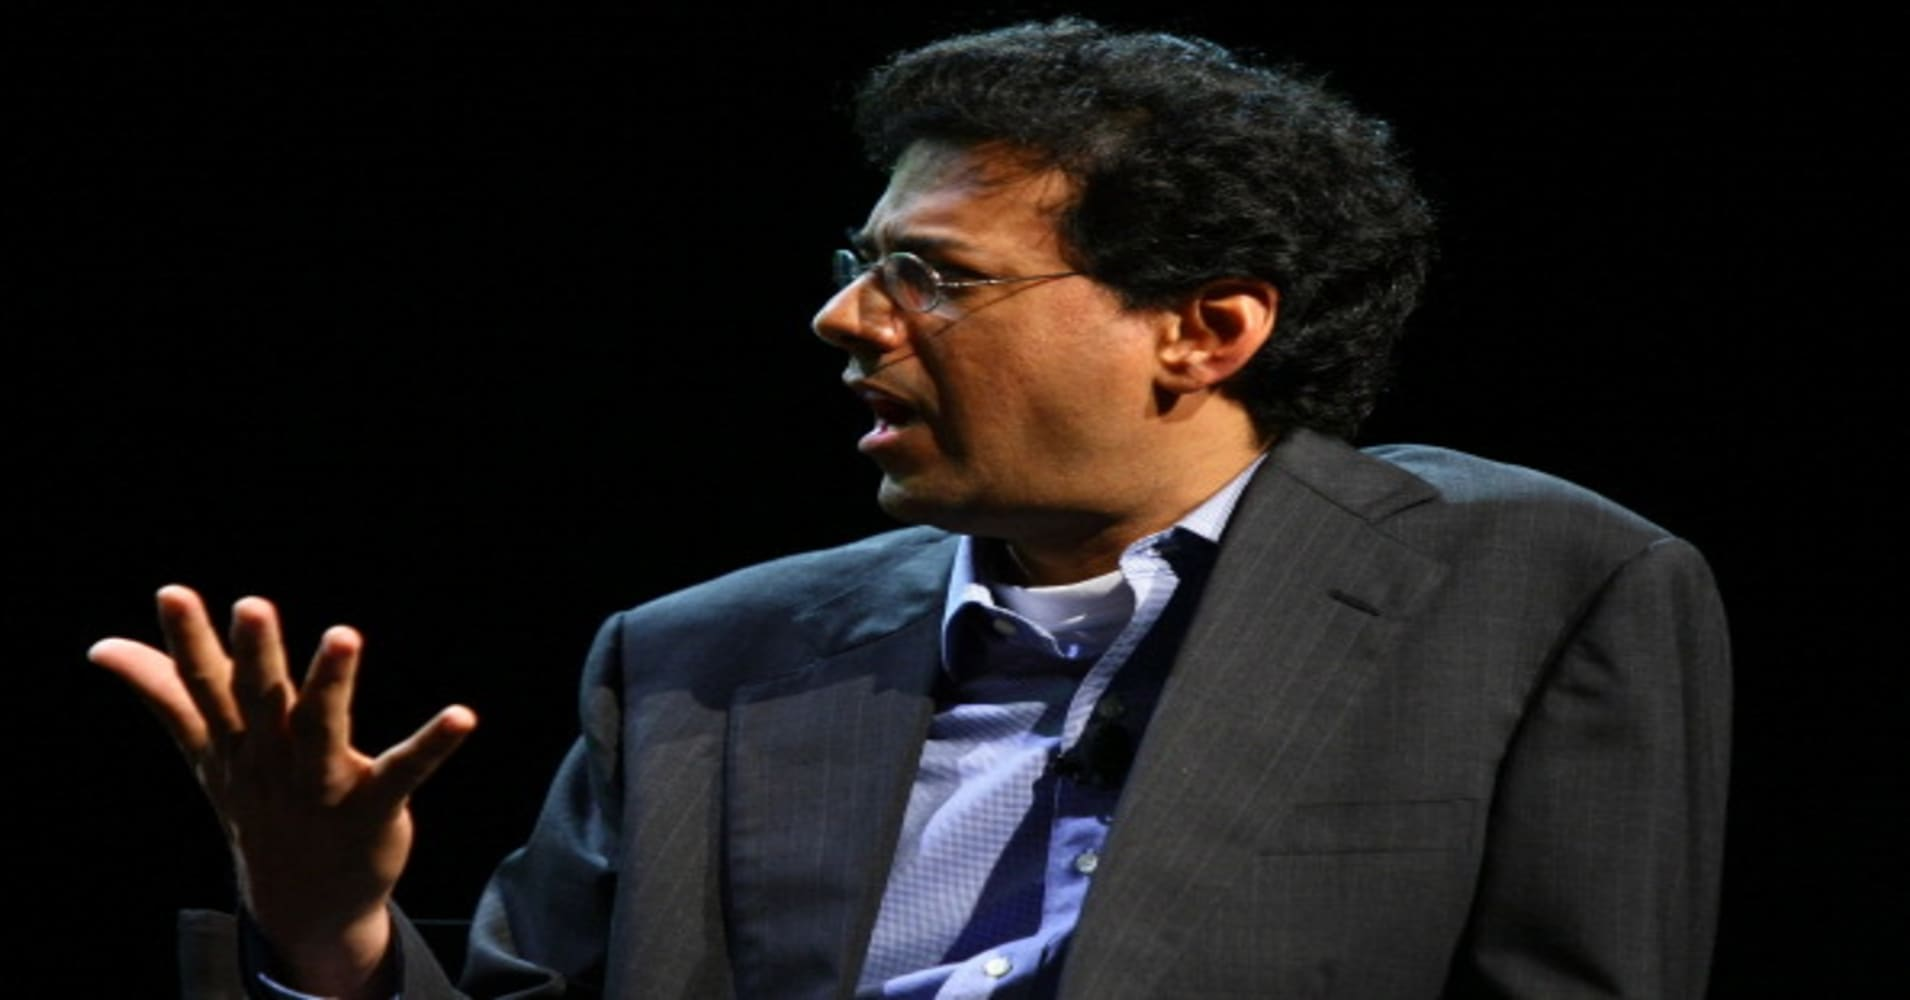 Buffett, Bezos, Dimon appoint Dr. Atul Gawande as CEO of their newly formed health-care company